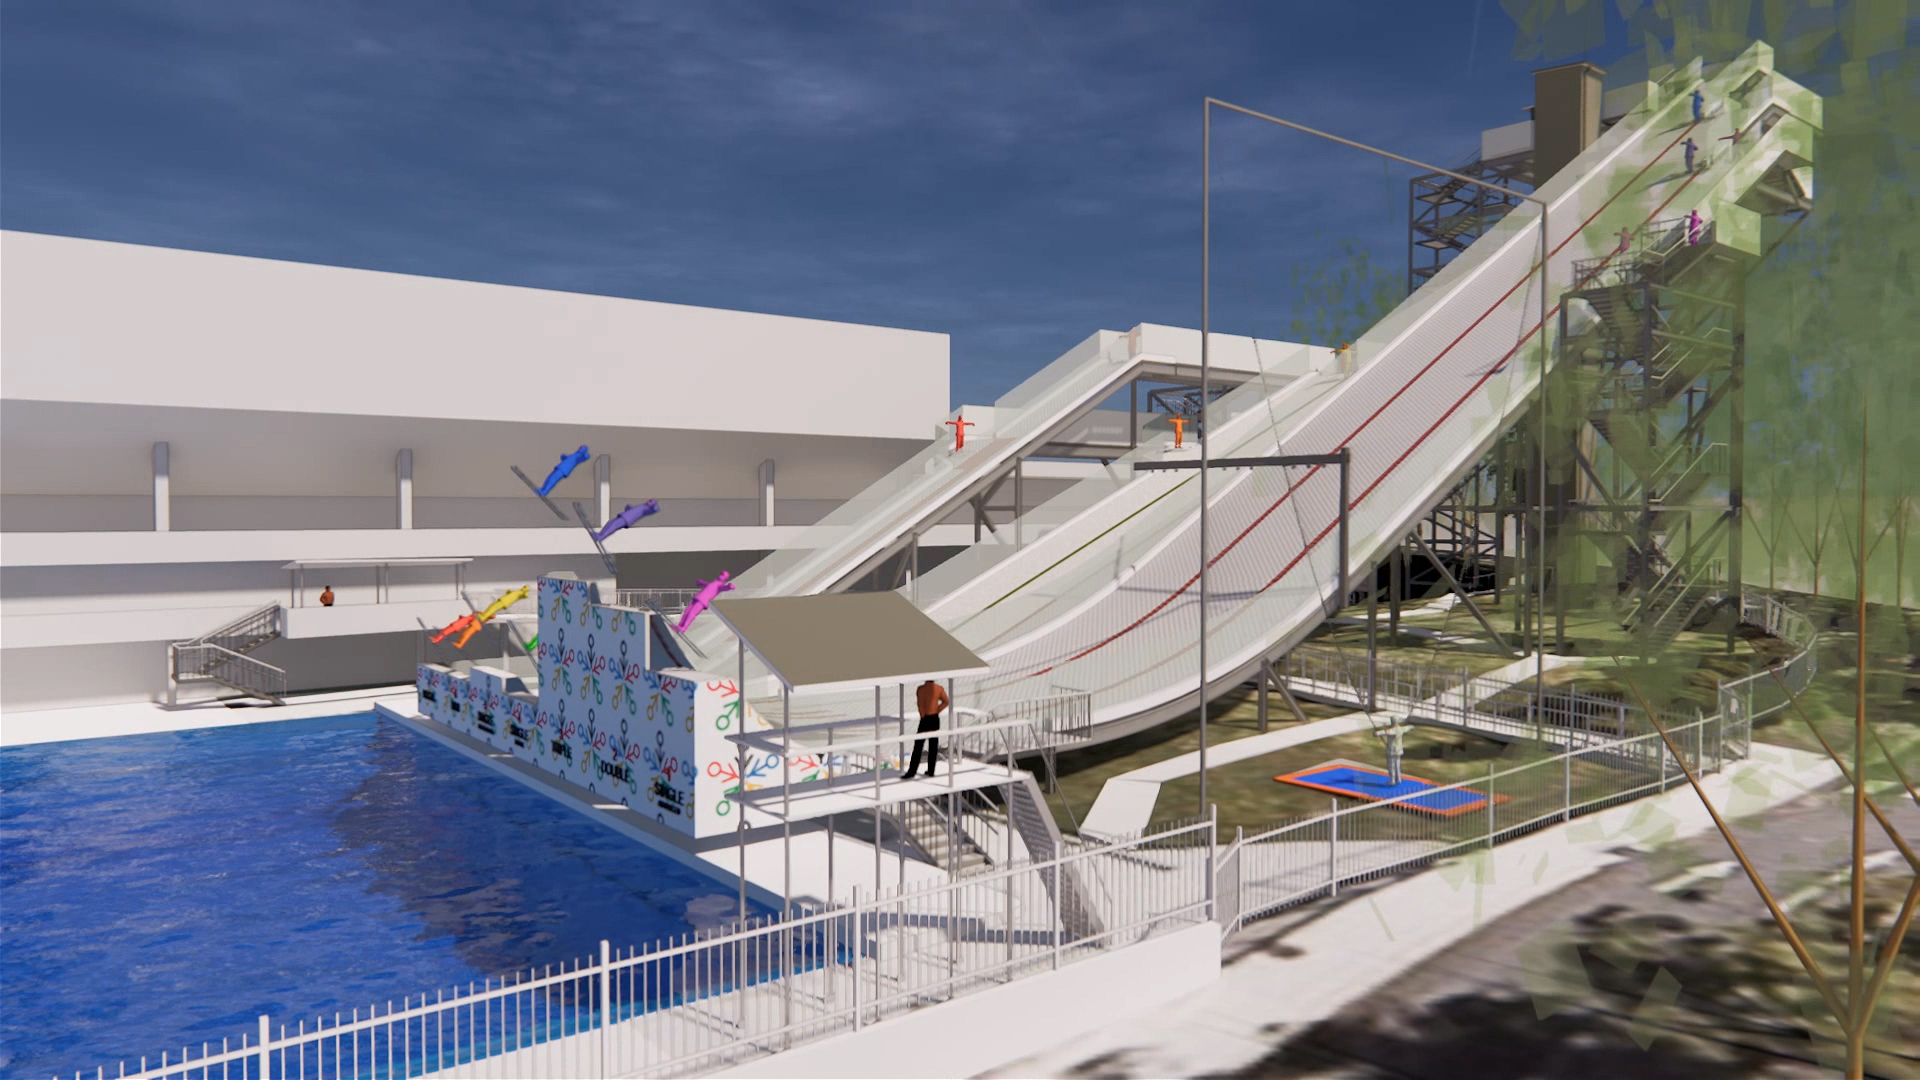 International Feestyle Skiing Training Facility at the Sleeman Sports Complex – Pool and Ski Ramps Architectural Render – Gardner Wetherill GW 2